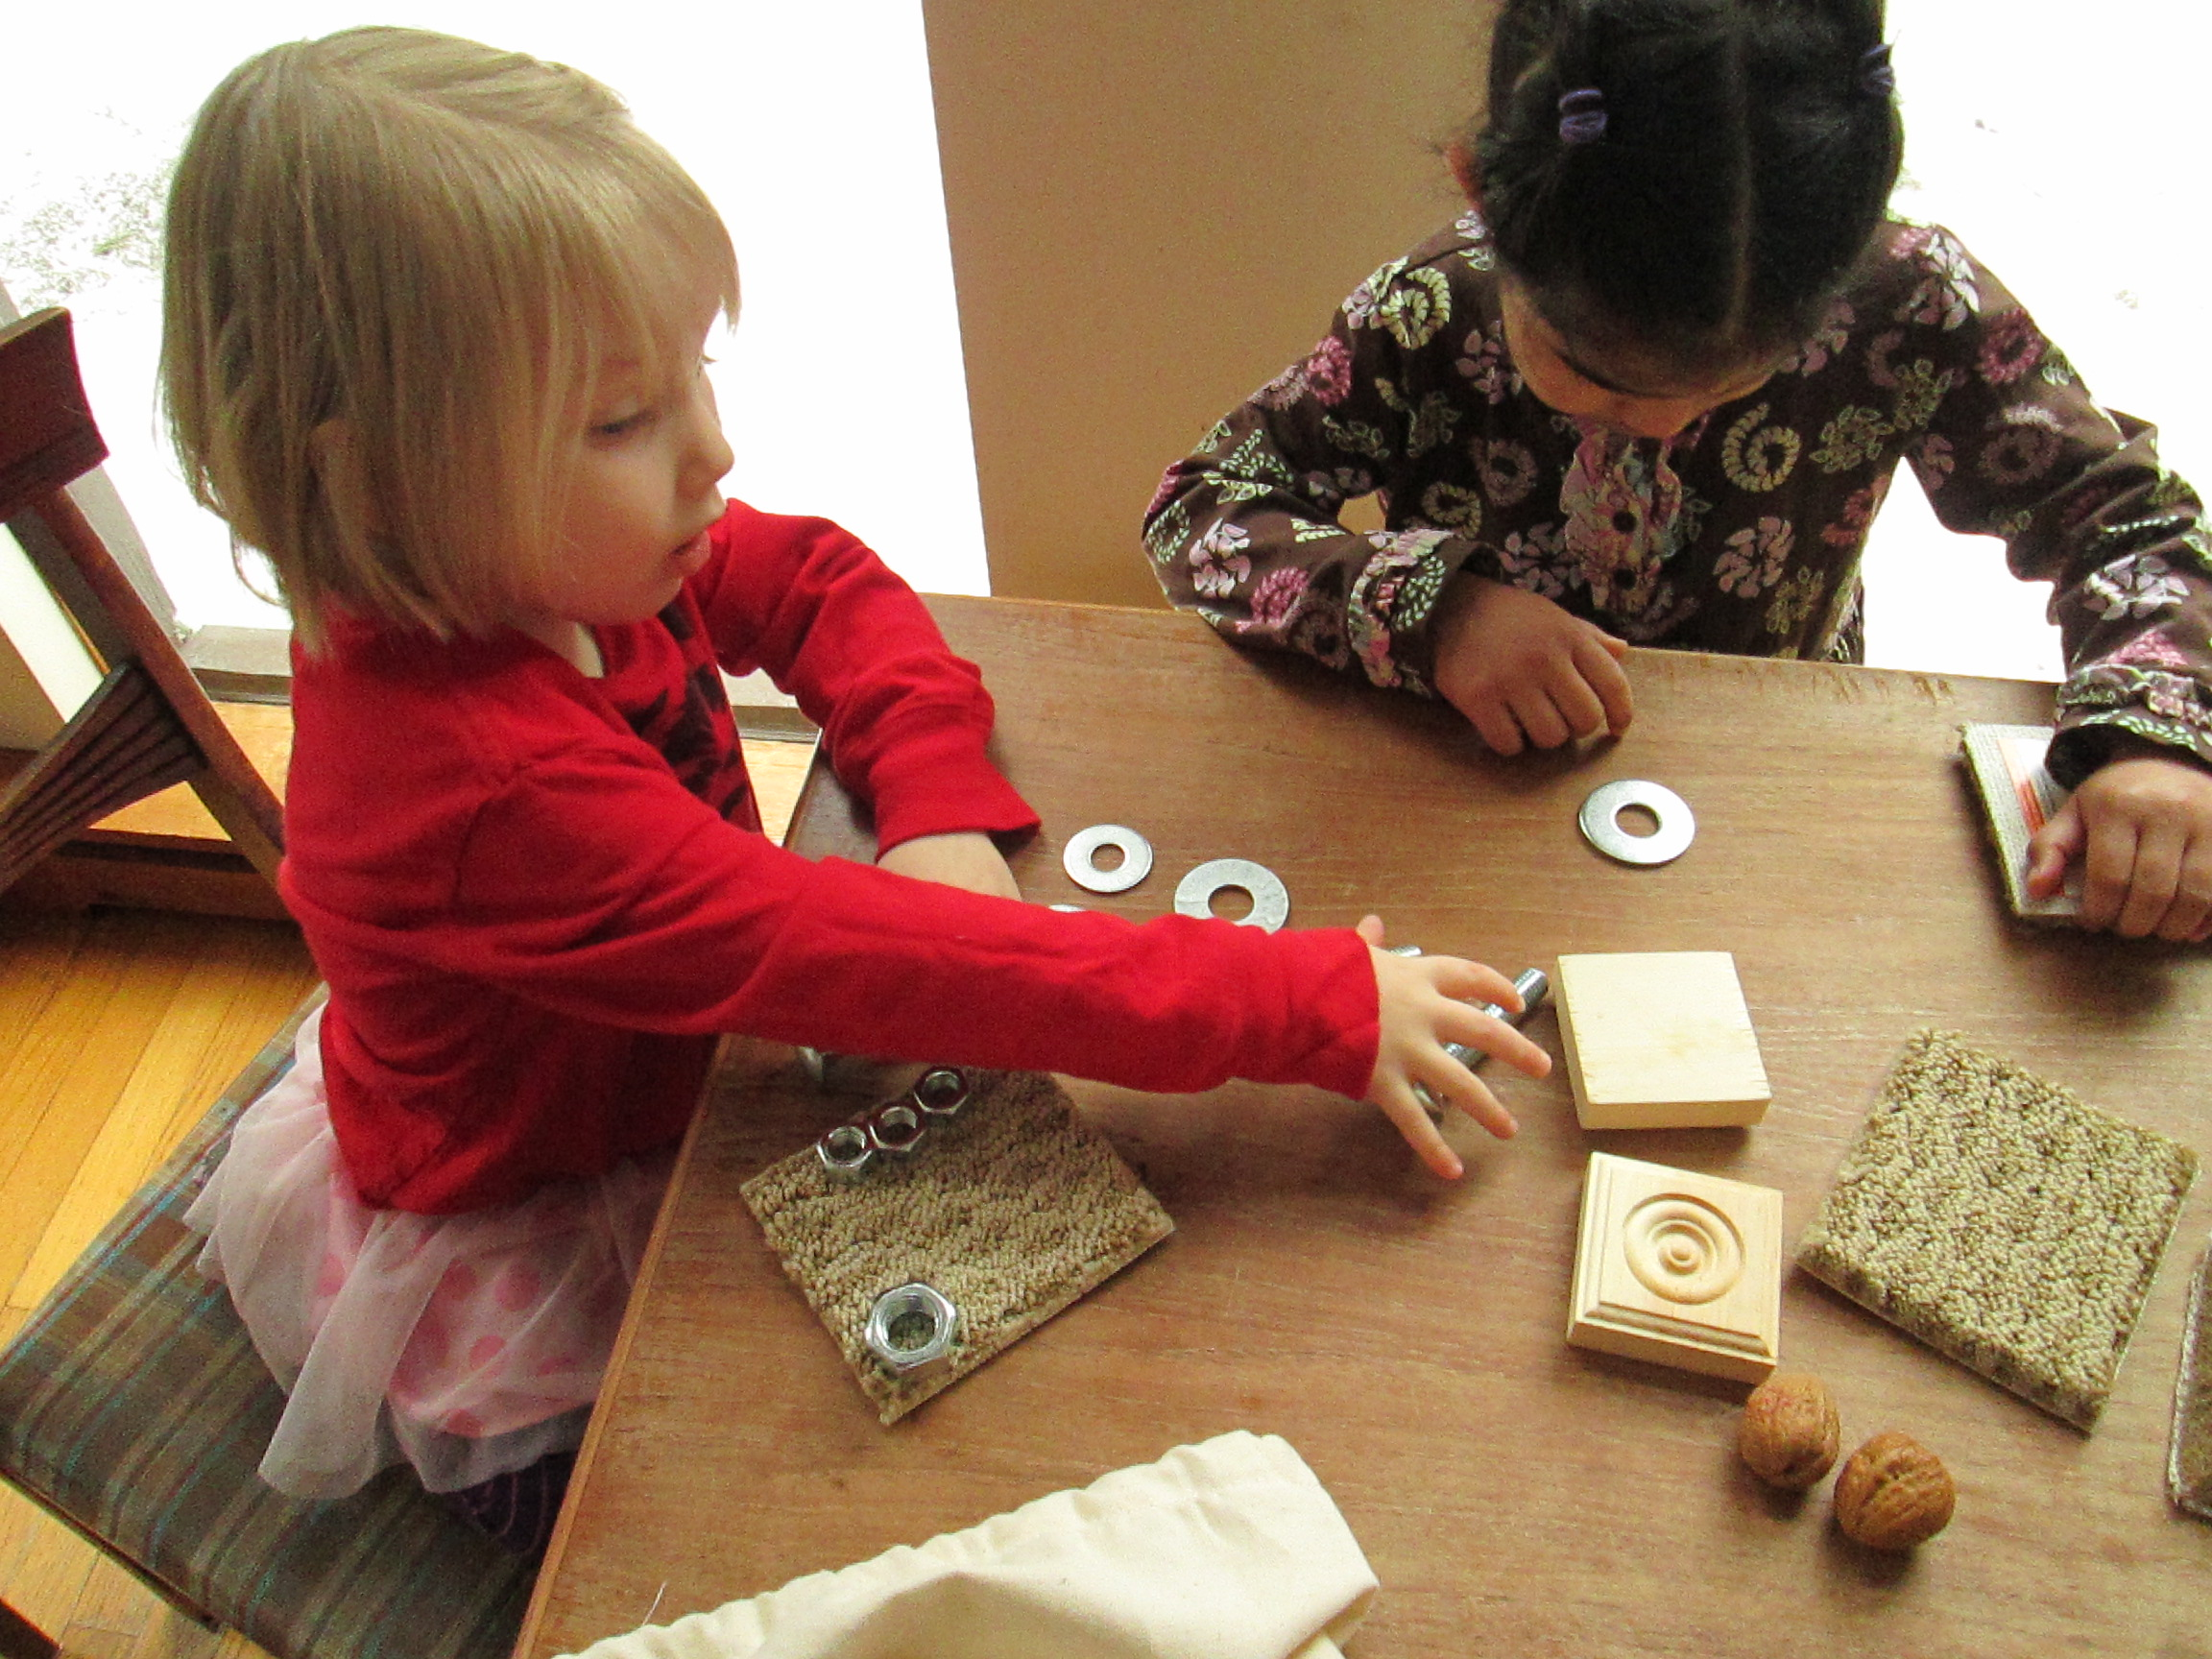 Two girls playing with comparing bag on tabletop